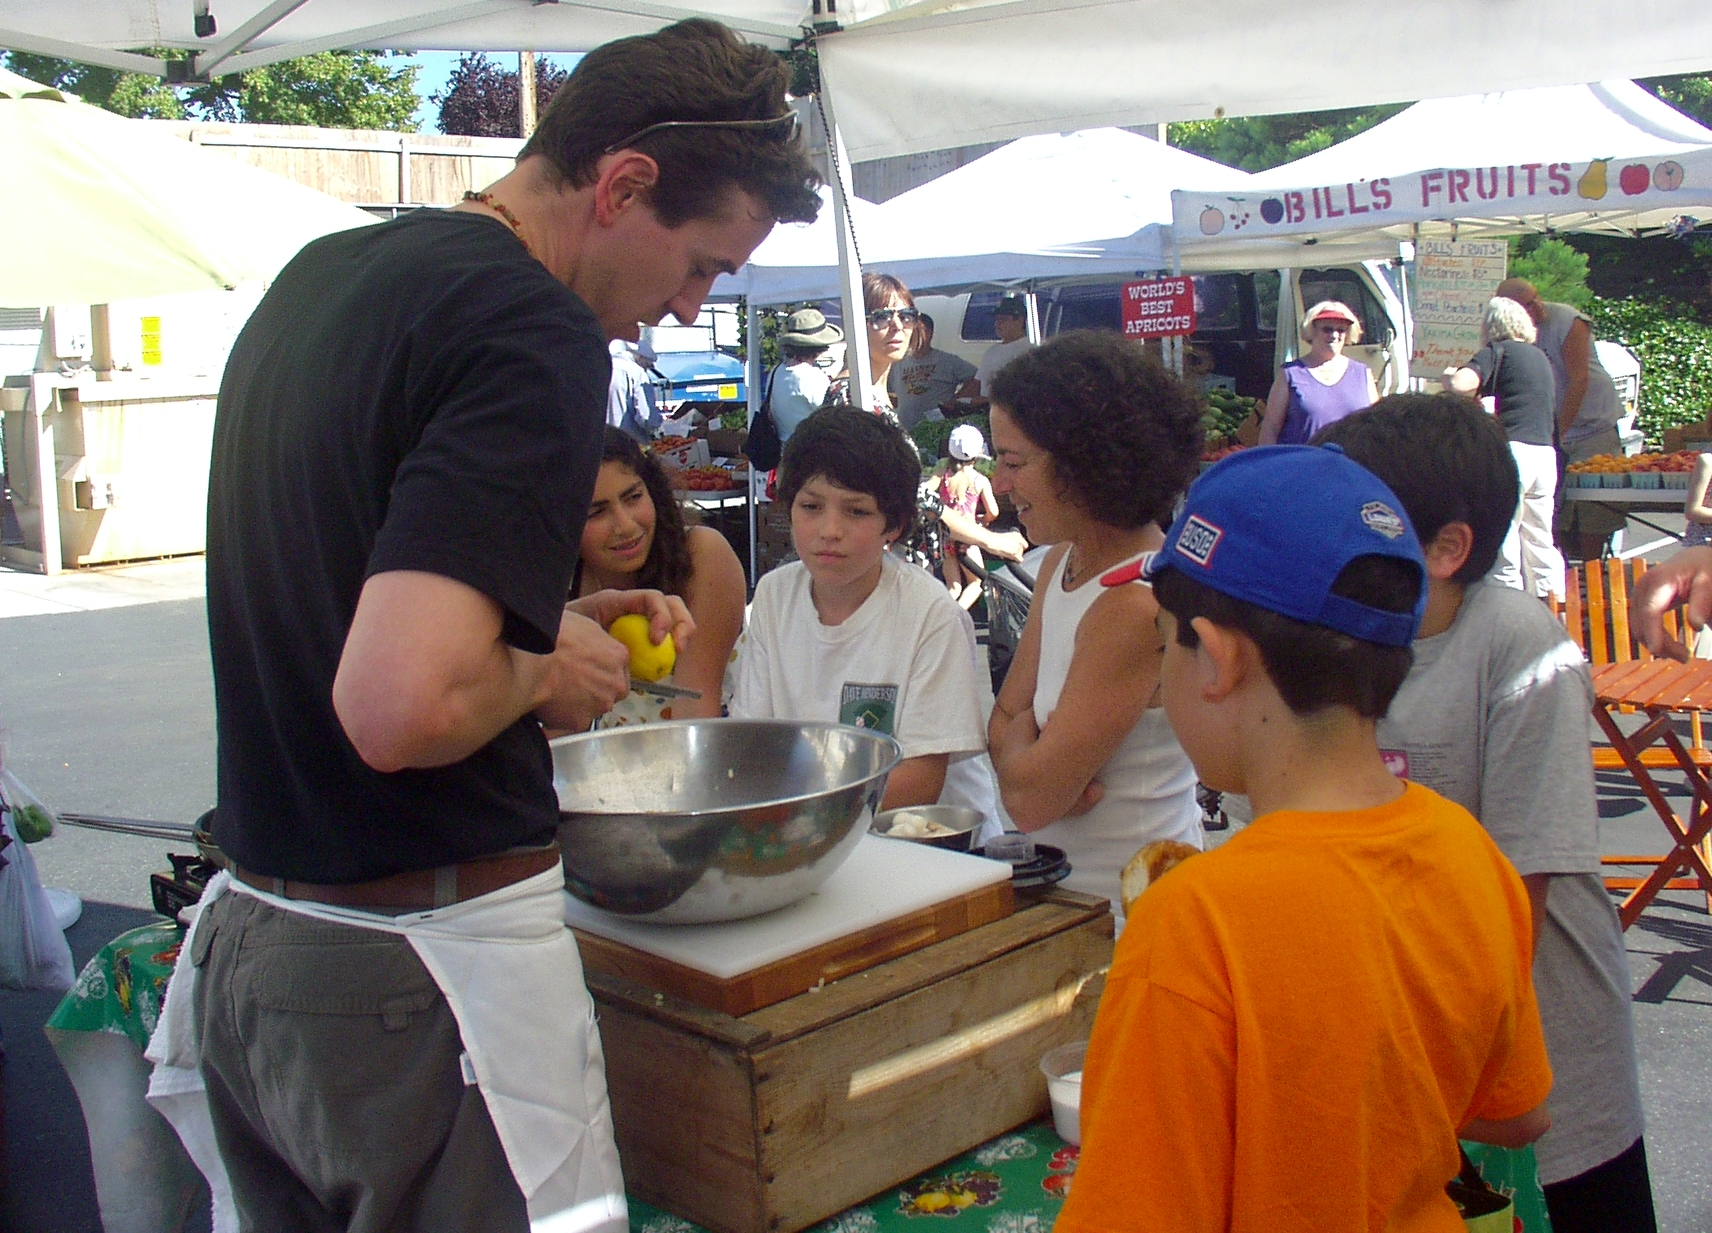 Chef Dustin Ronspies of Art of the Table with a spellbound audience at the Walllingford Farmers Market in 2008. Photo copyright 2008 by Zachary D. Lyons.